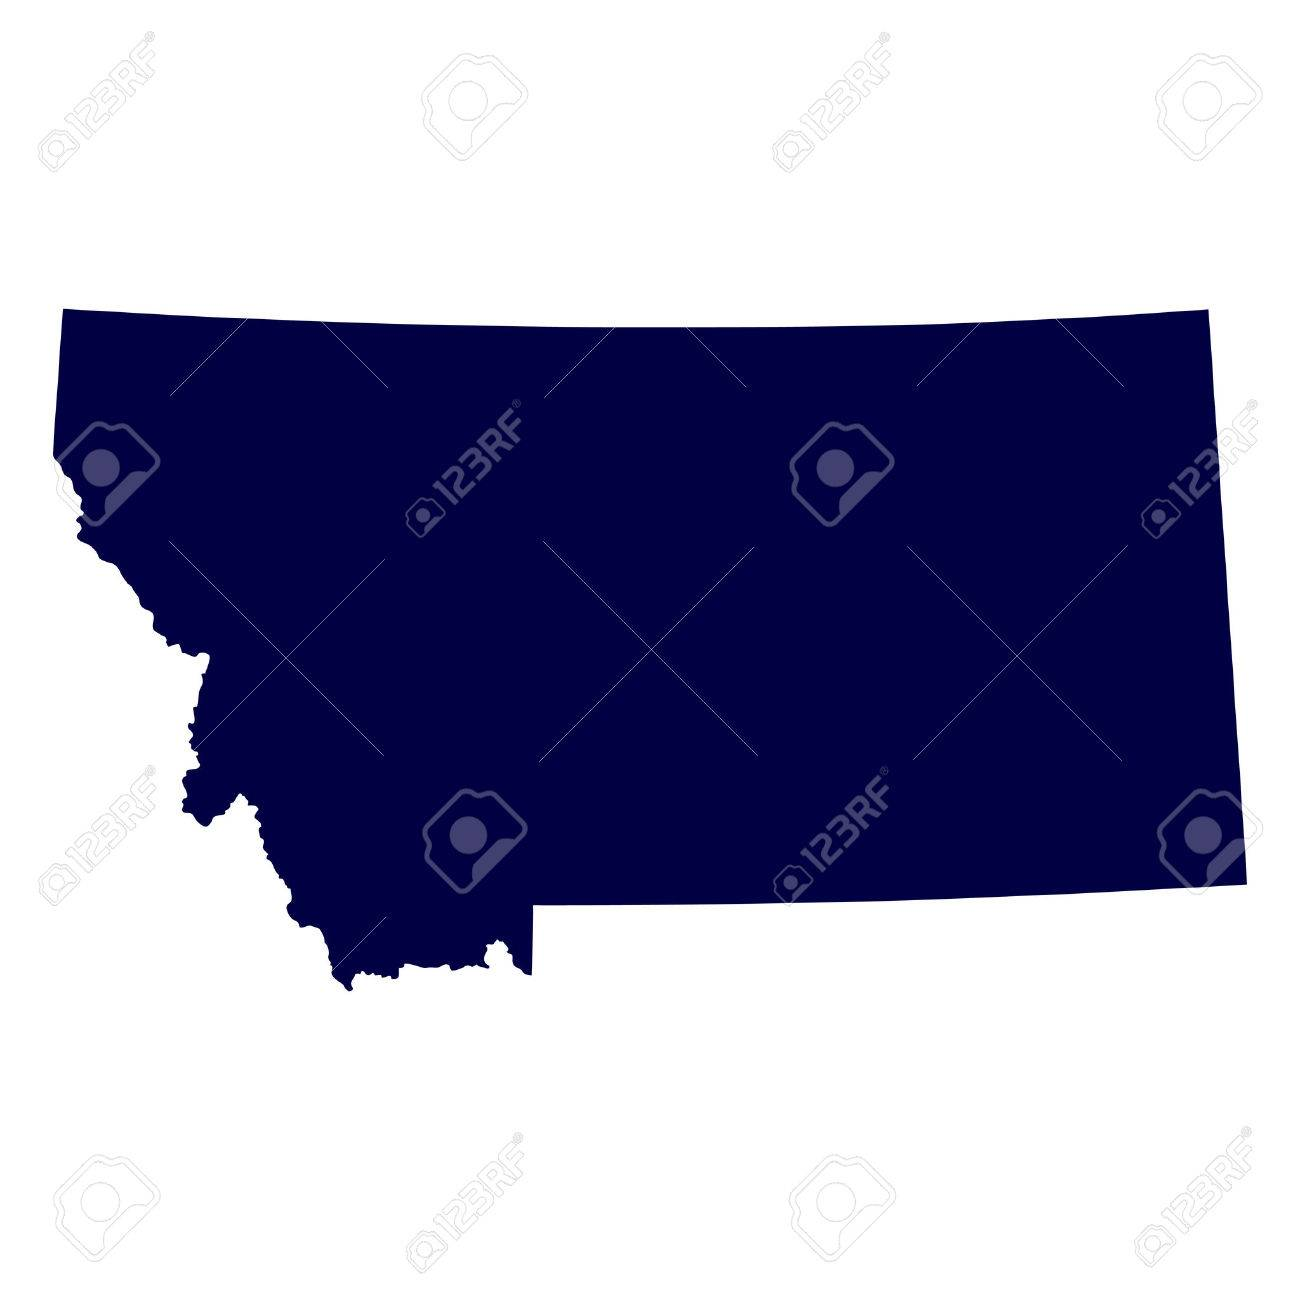 Map Of The U S State Of Montana Royalty Free Cliparts Vectors